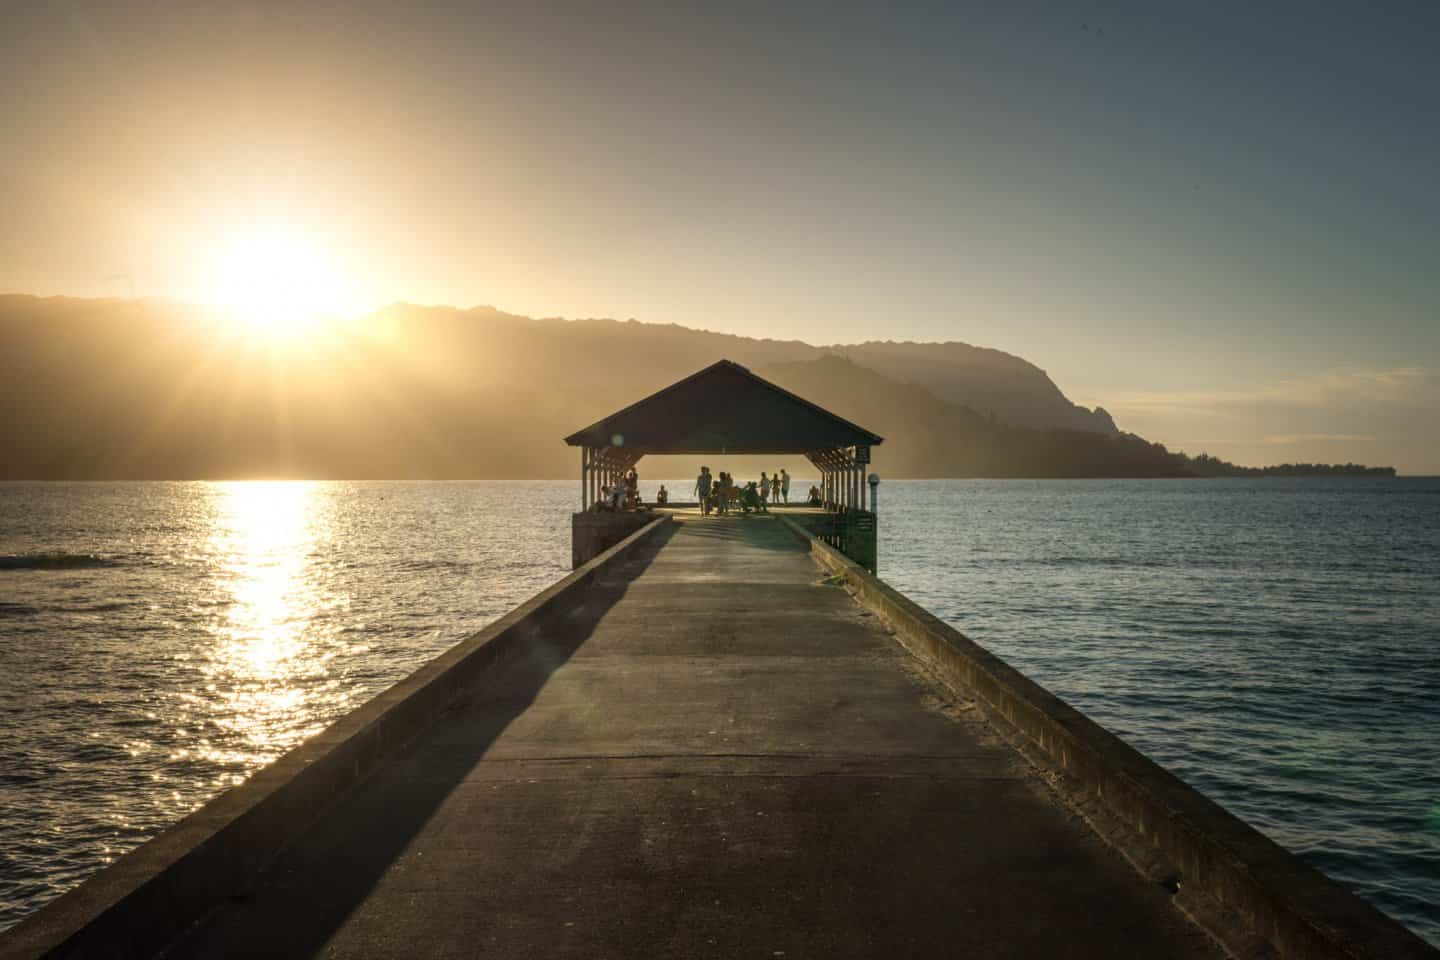 Sunset photography from Hanalei Pier in Kauai.